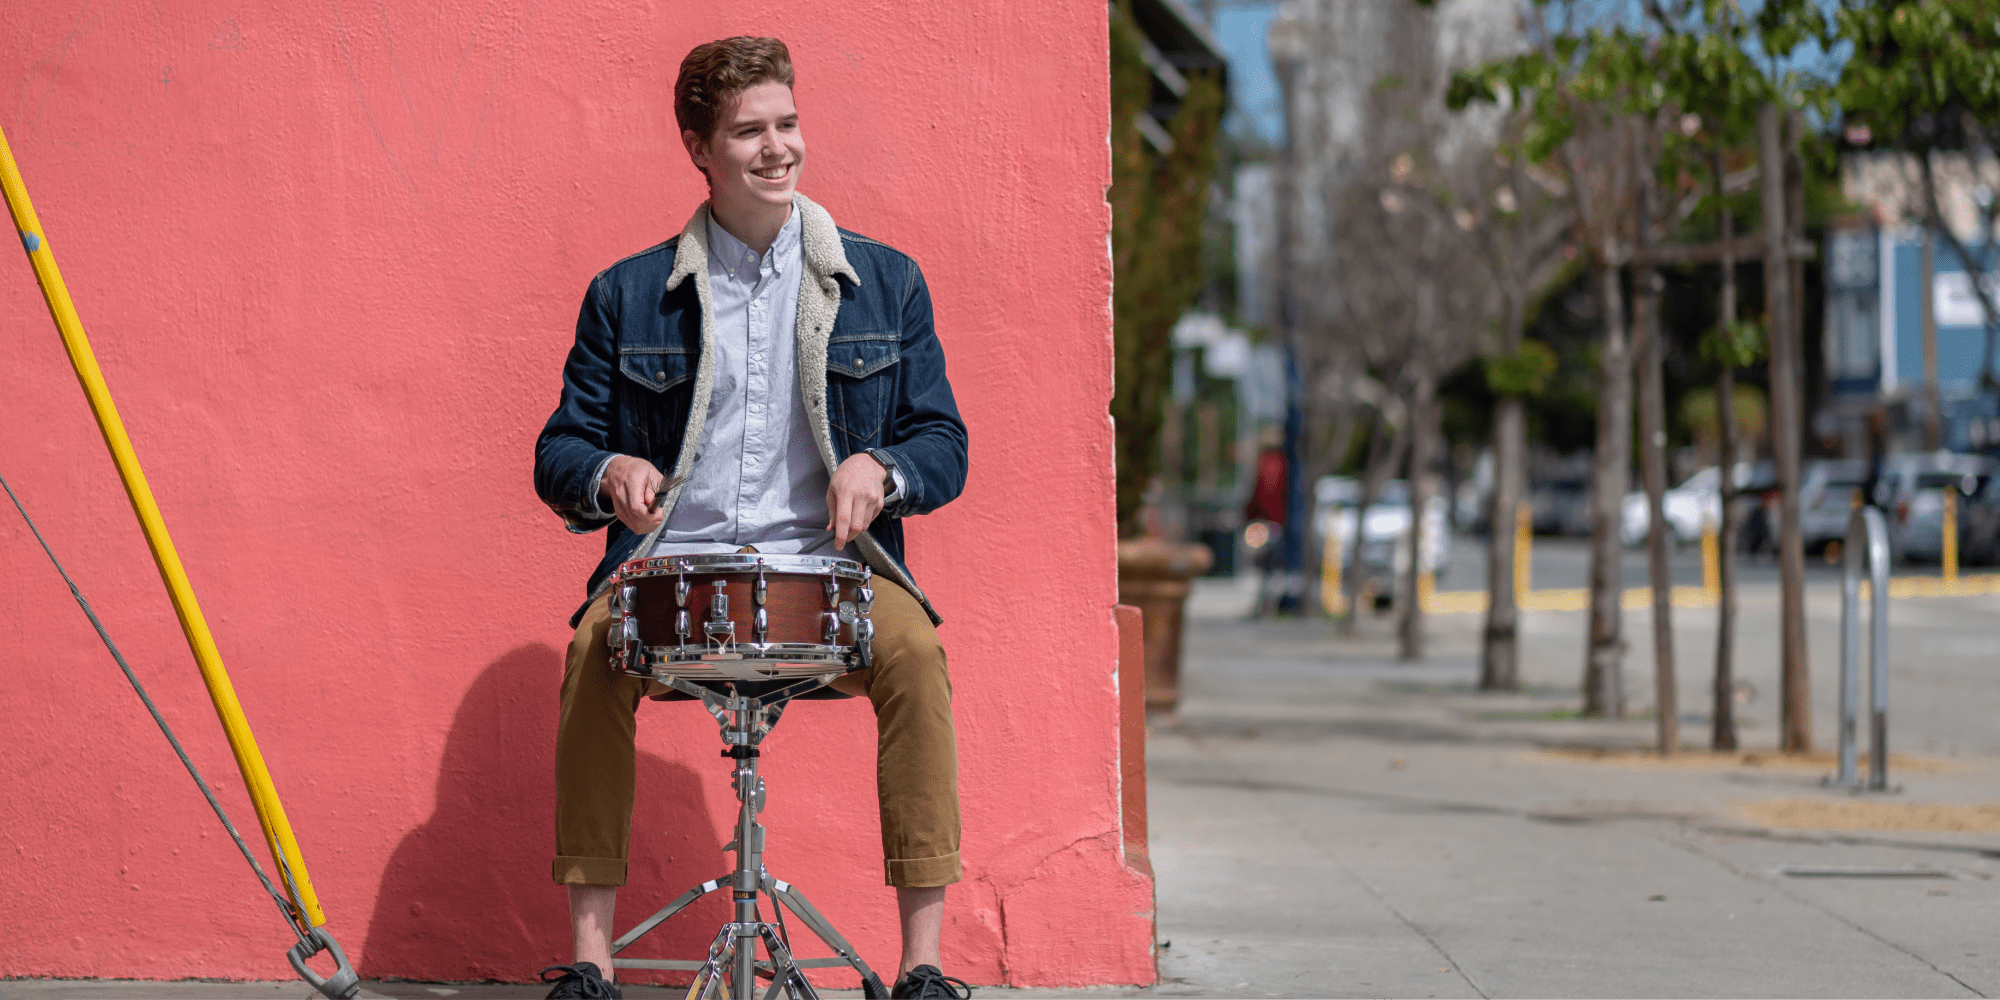 SFCM Percussion student playing outside